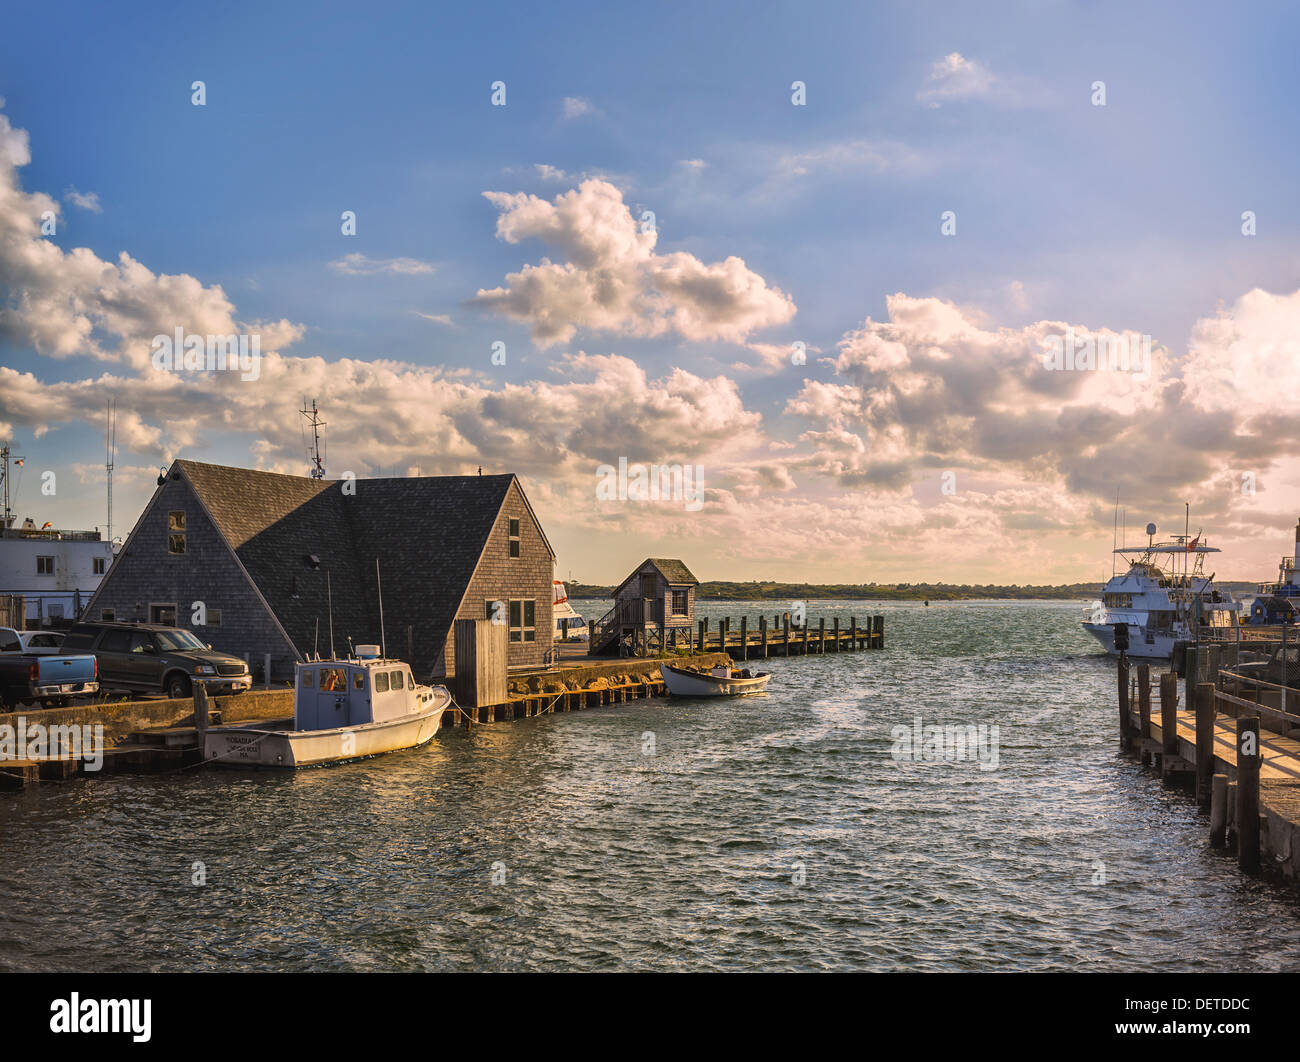 docked-boats-woods-hole-cape-cod-massachusetts-late-afternoon-in-autumn-DETDDC.jpg